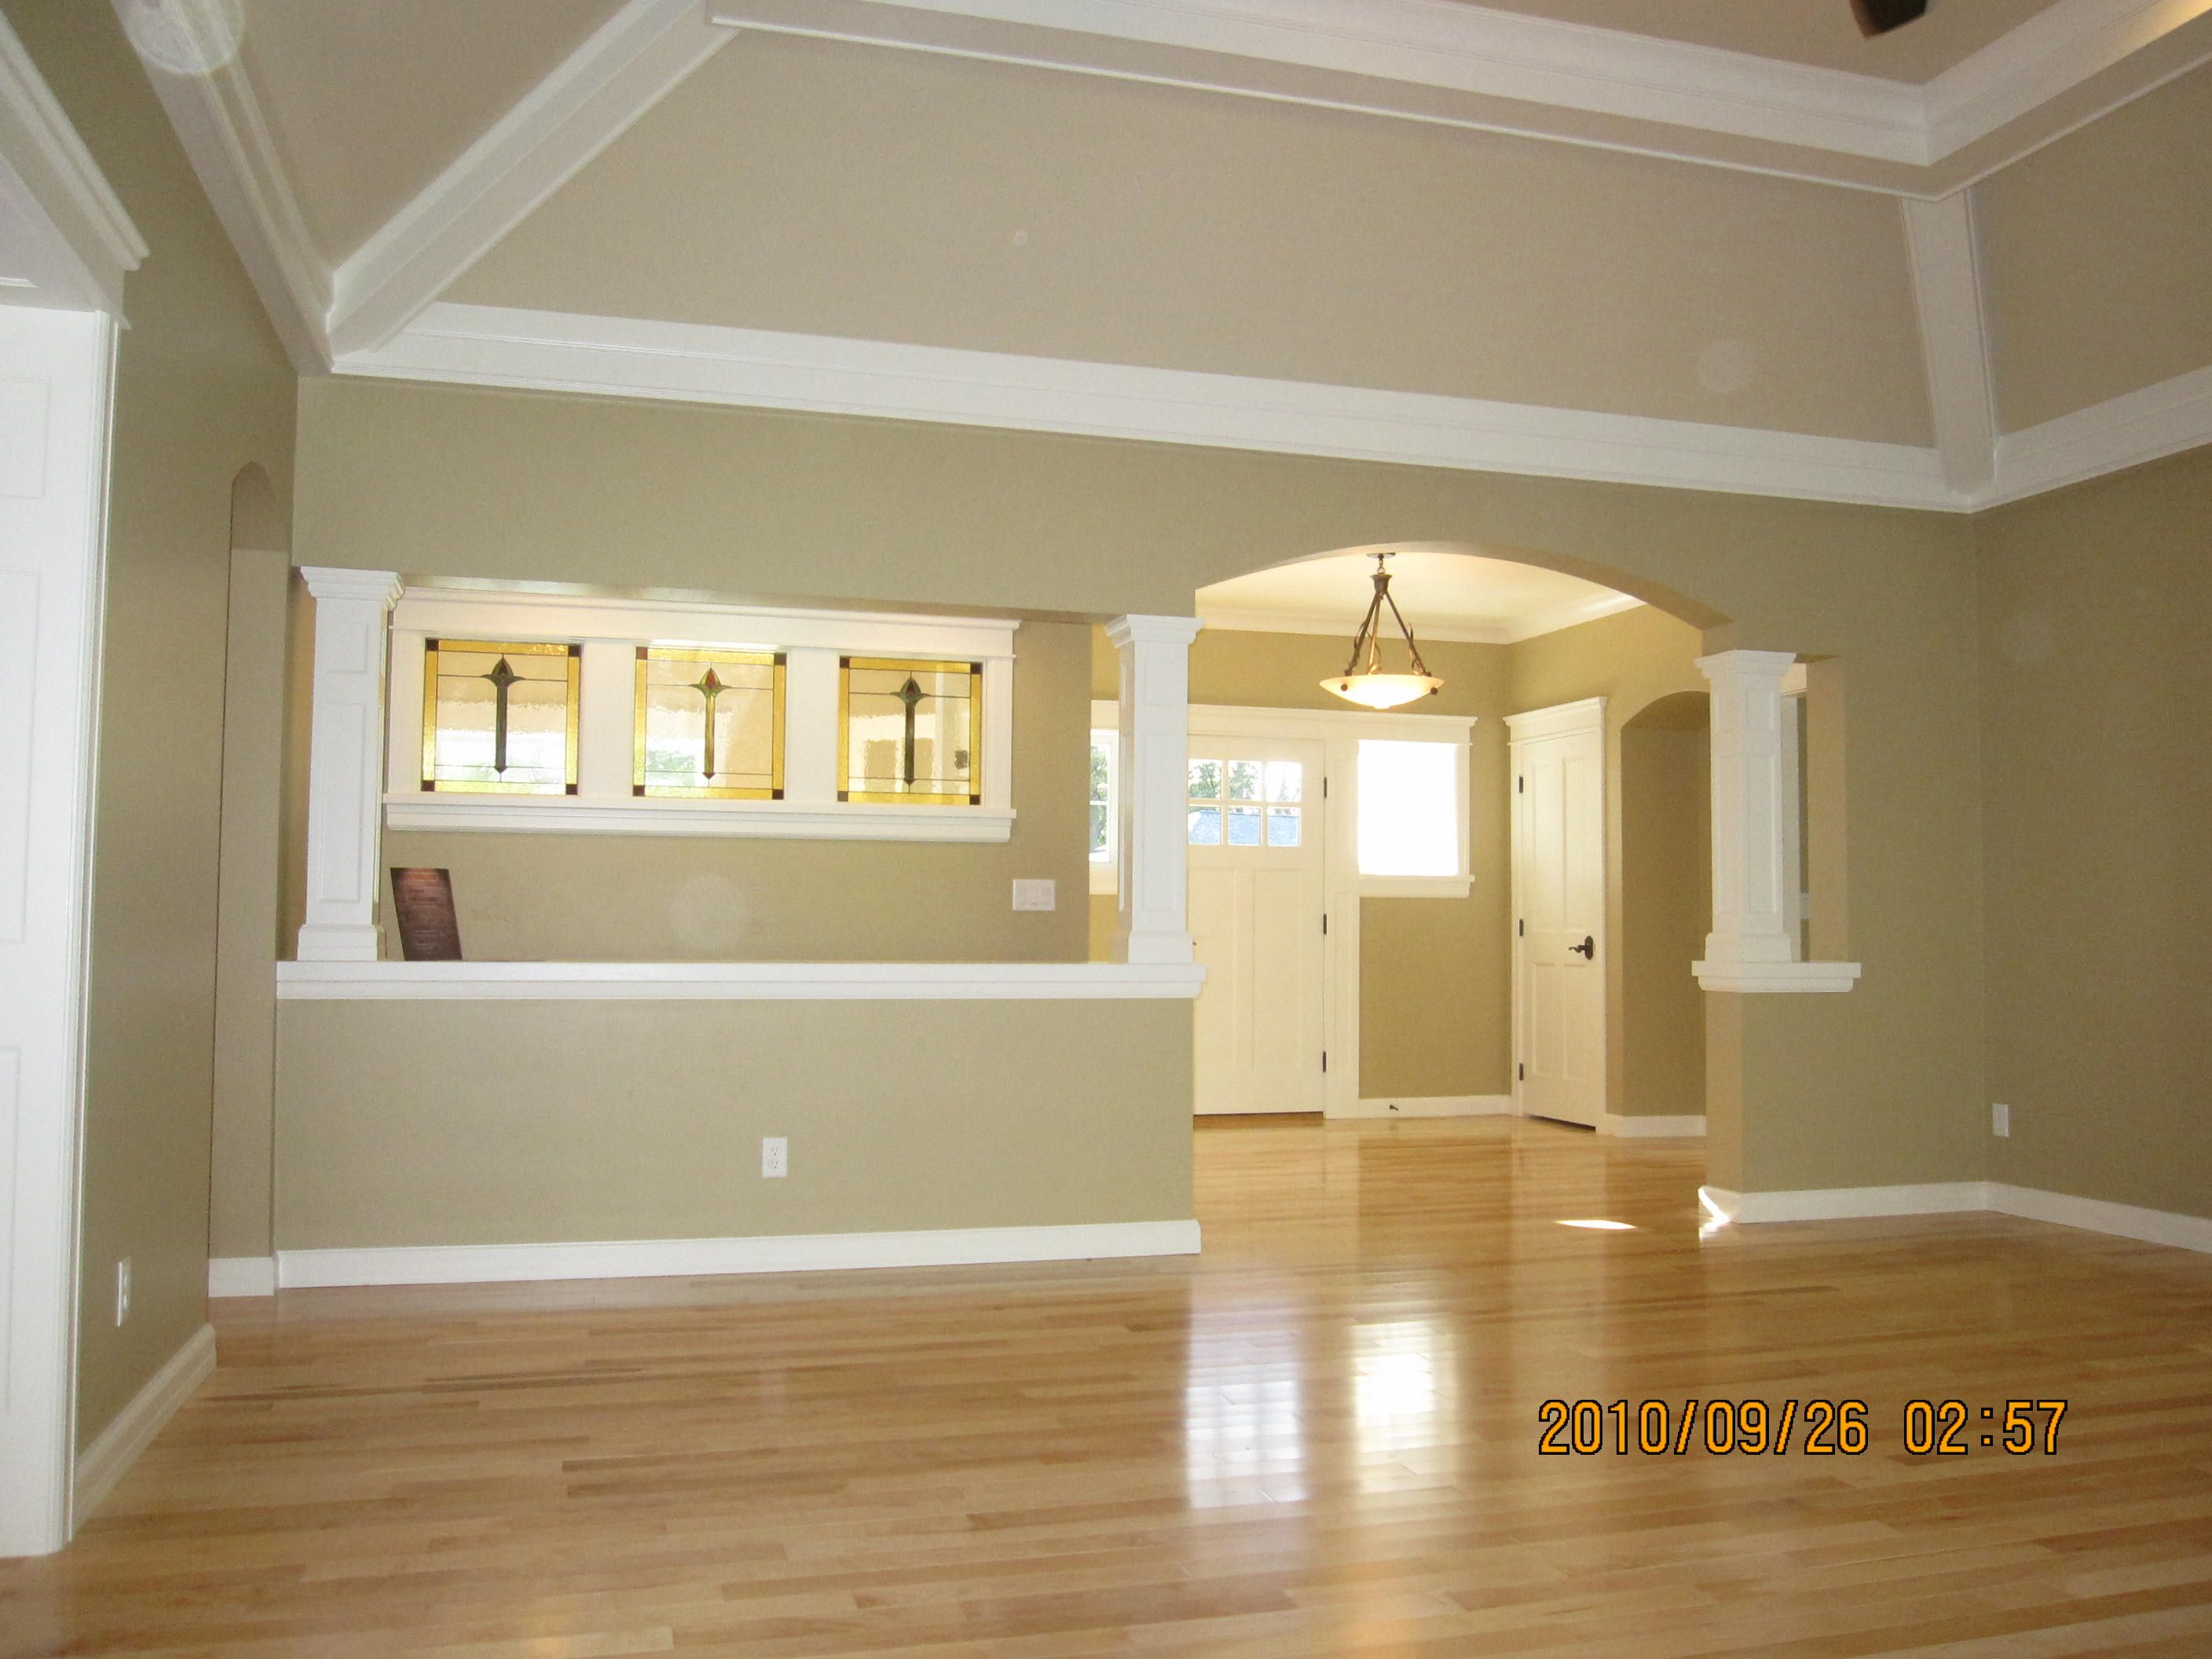 Foyer Tray Ceiling : Ceiling beams ideas view from great room into open foyer